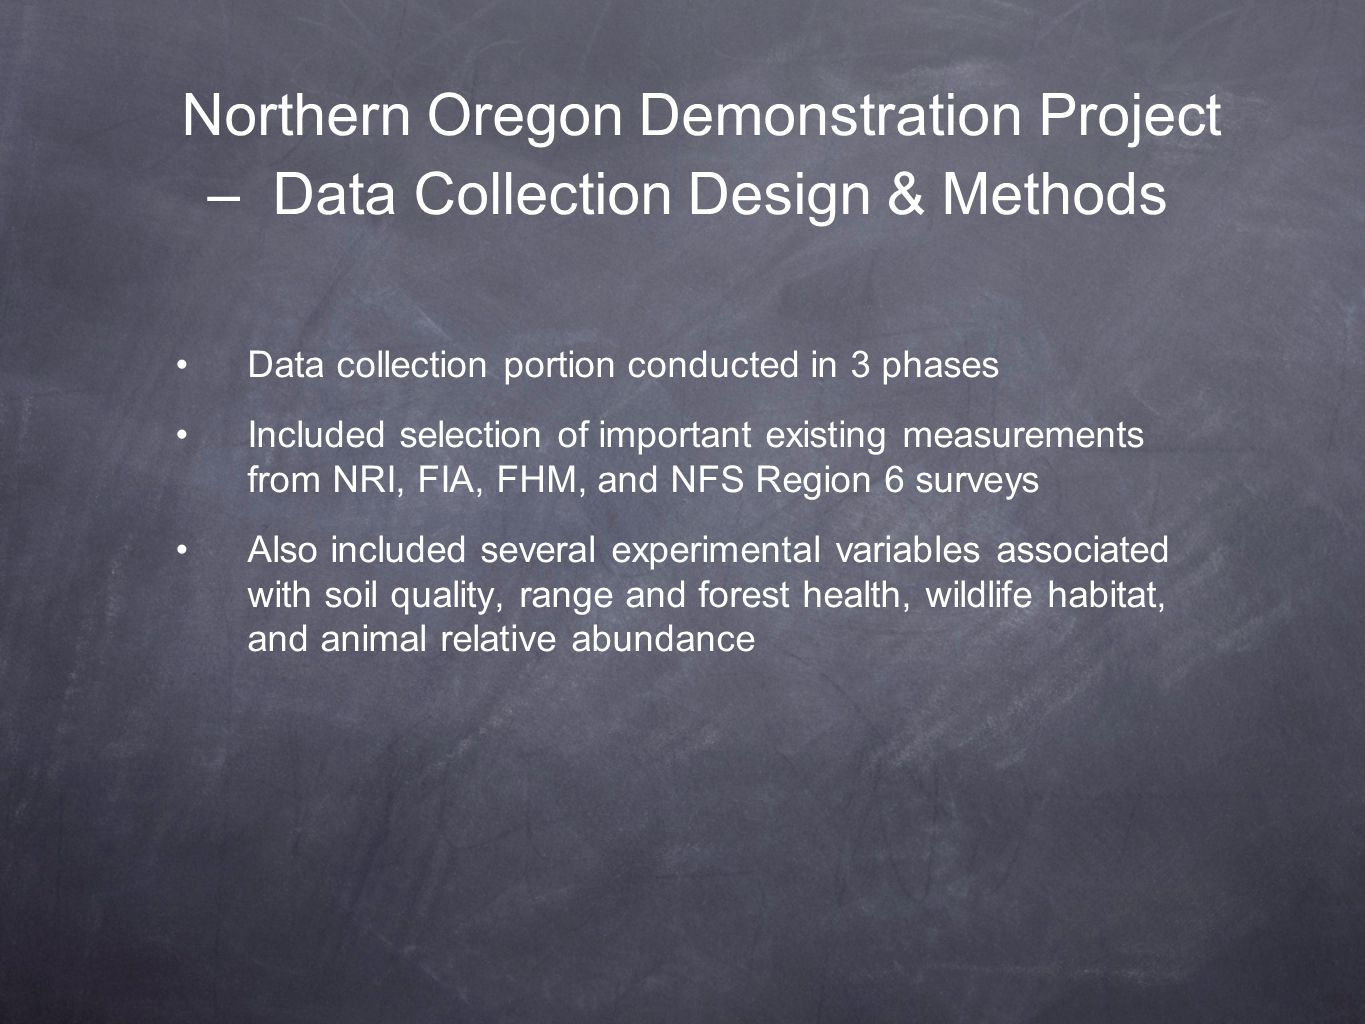 Northern Oregon Demonstration Project – Data Collection Design & Methods